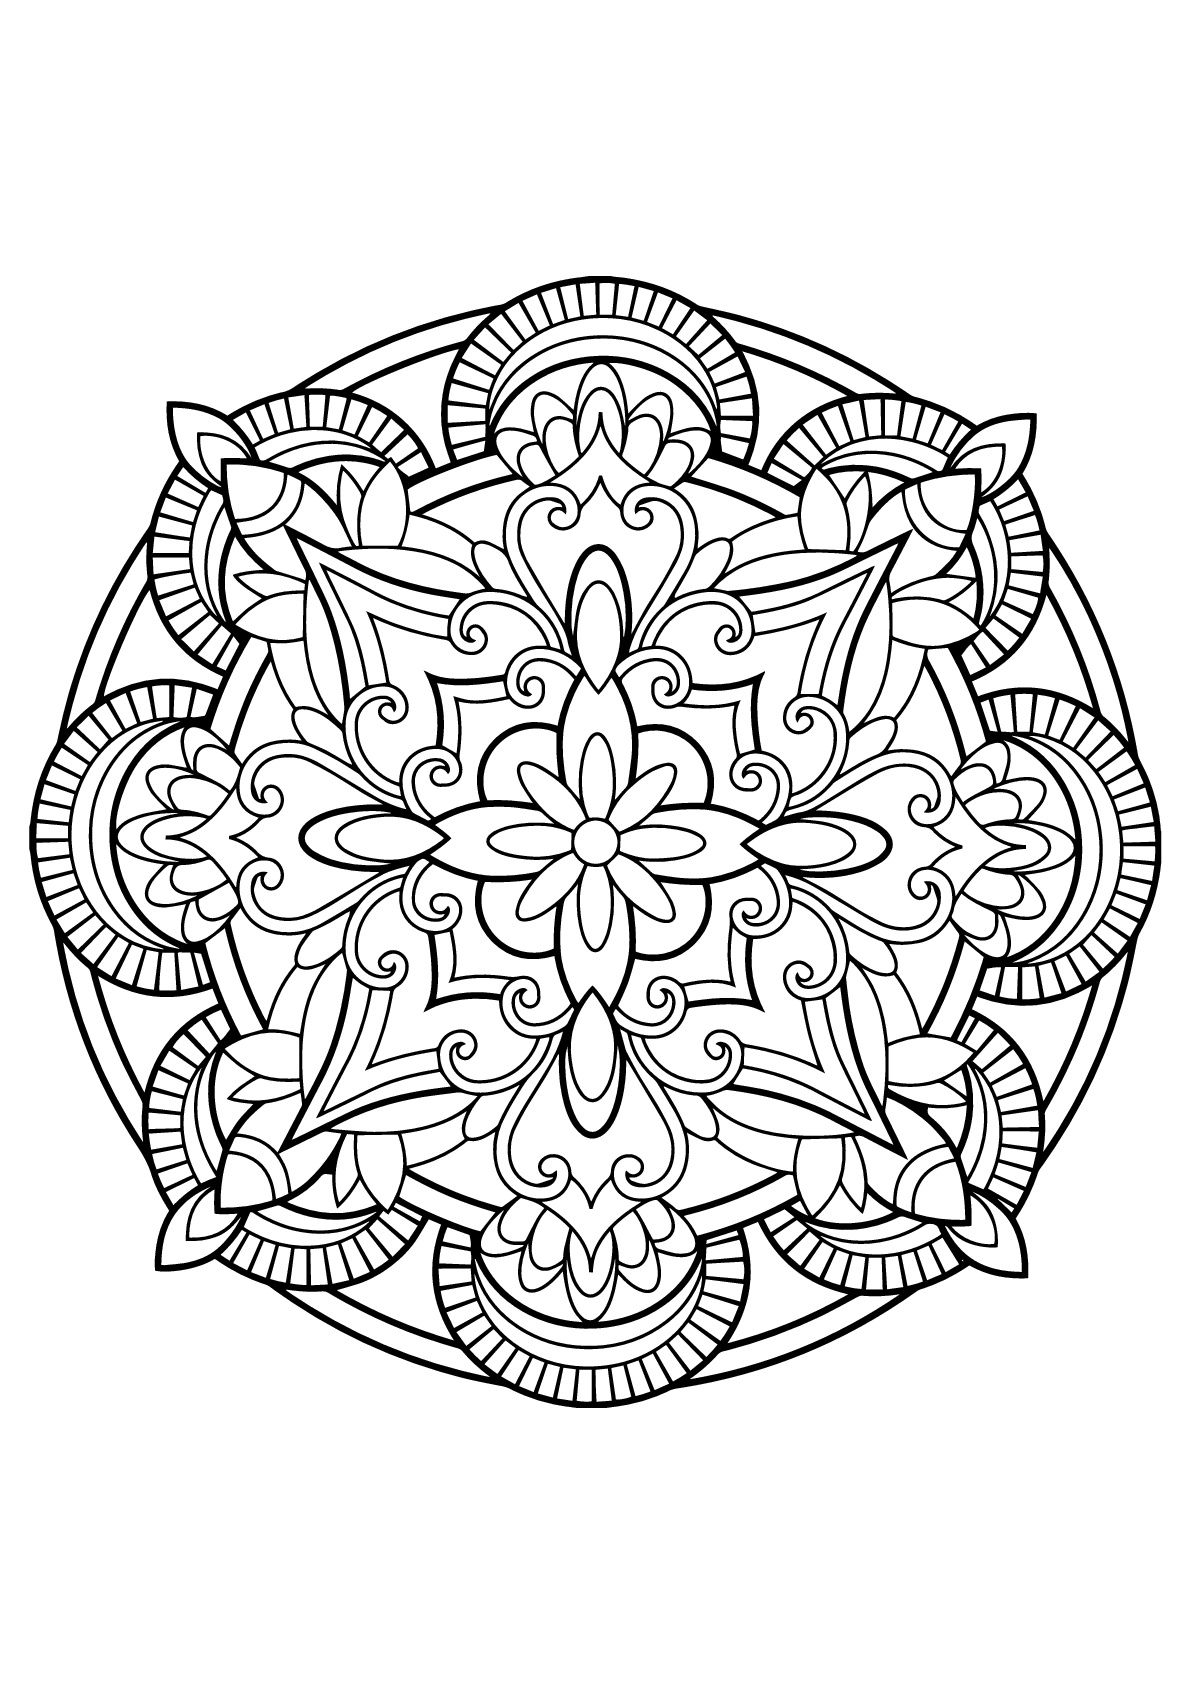 word mandala coloring pages here are difficult mandalas coloring pages for adults to coloring pages word mandala